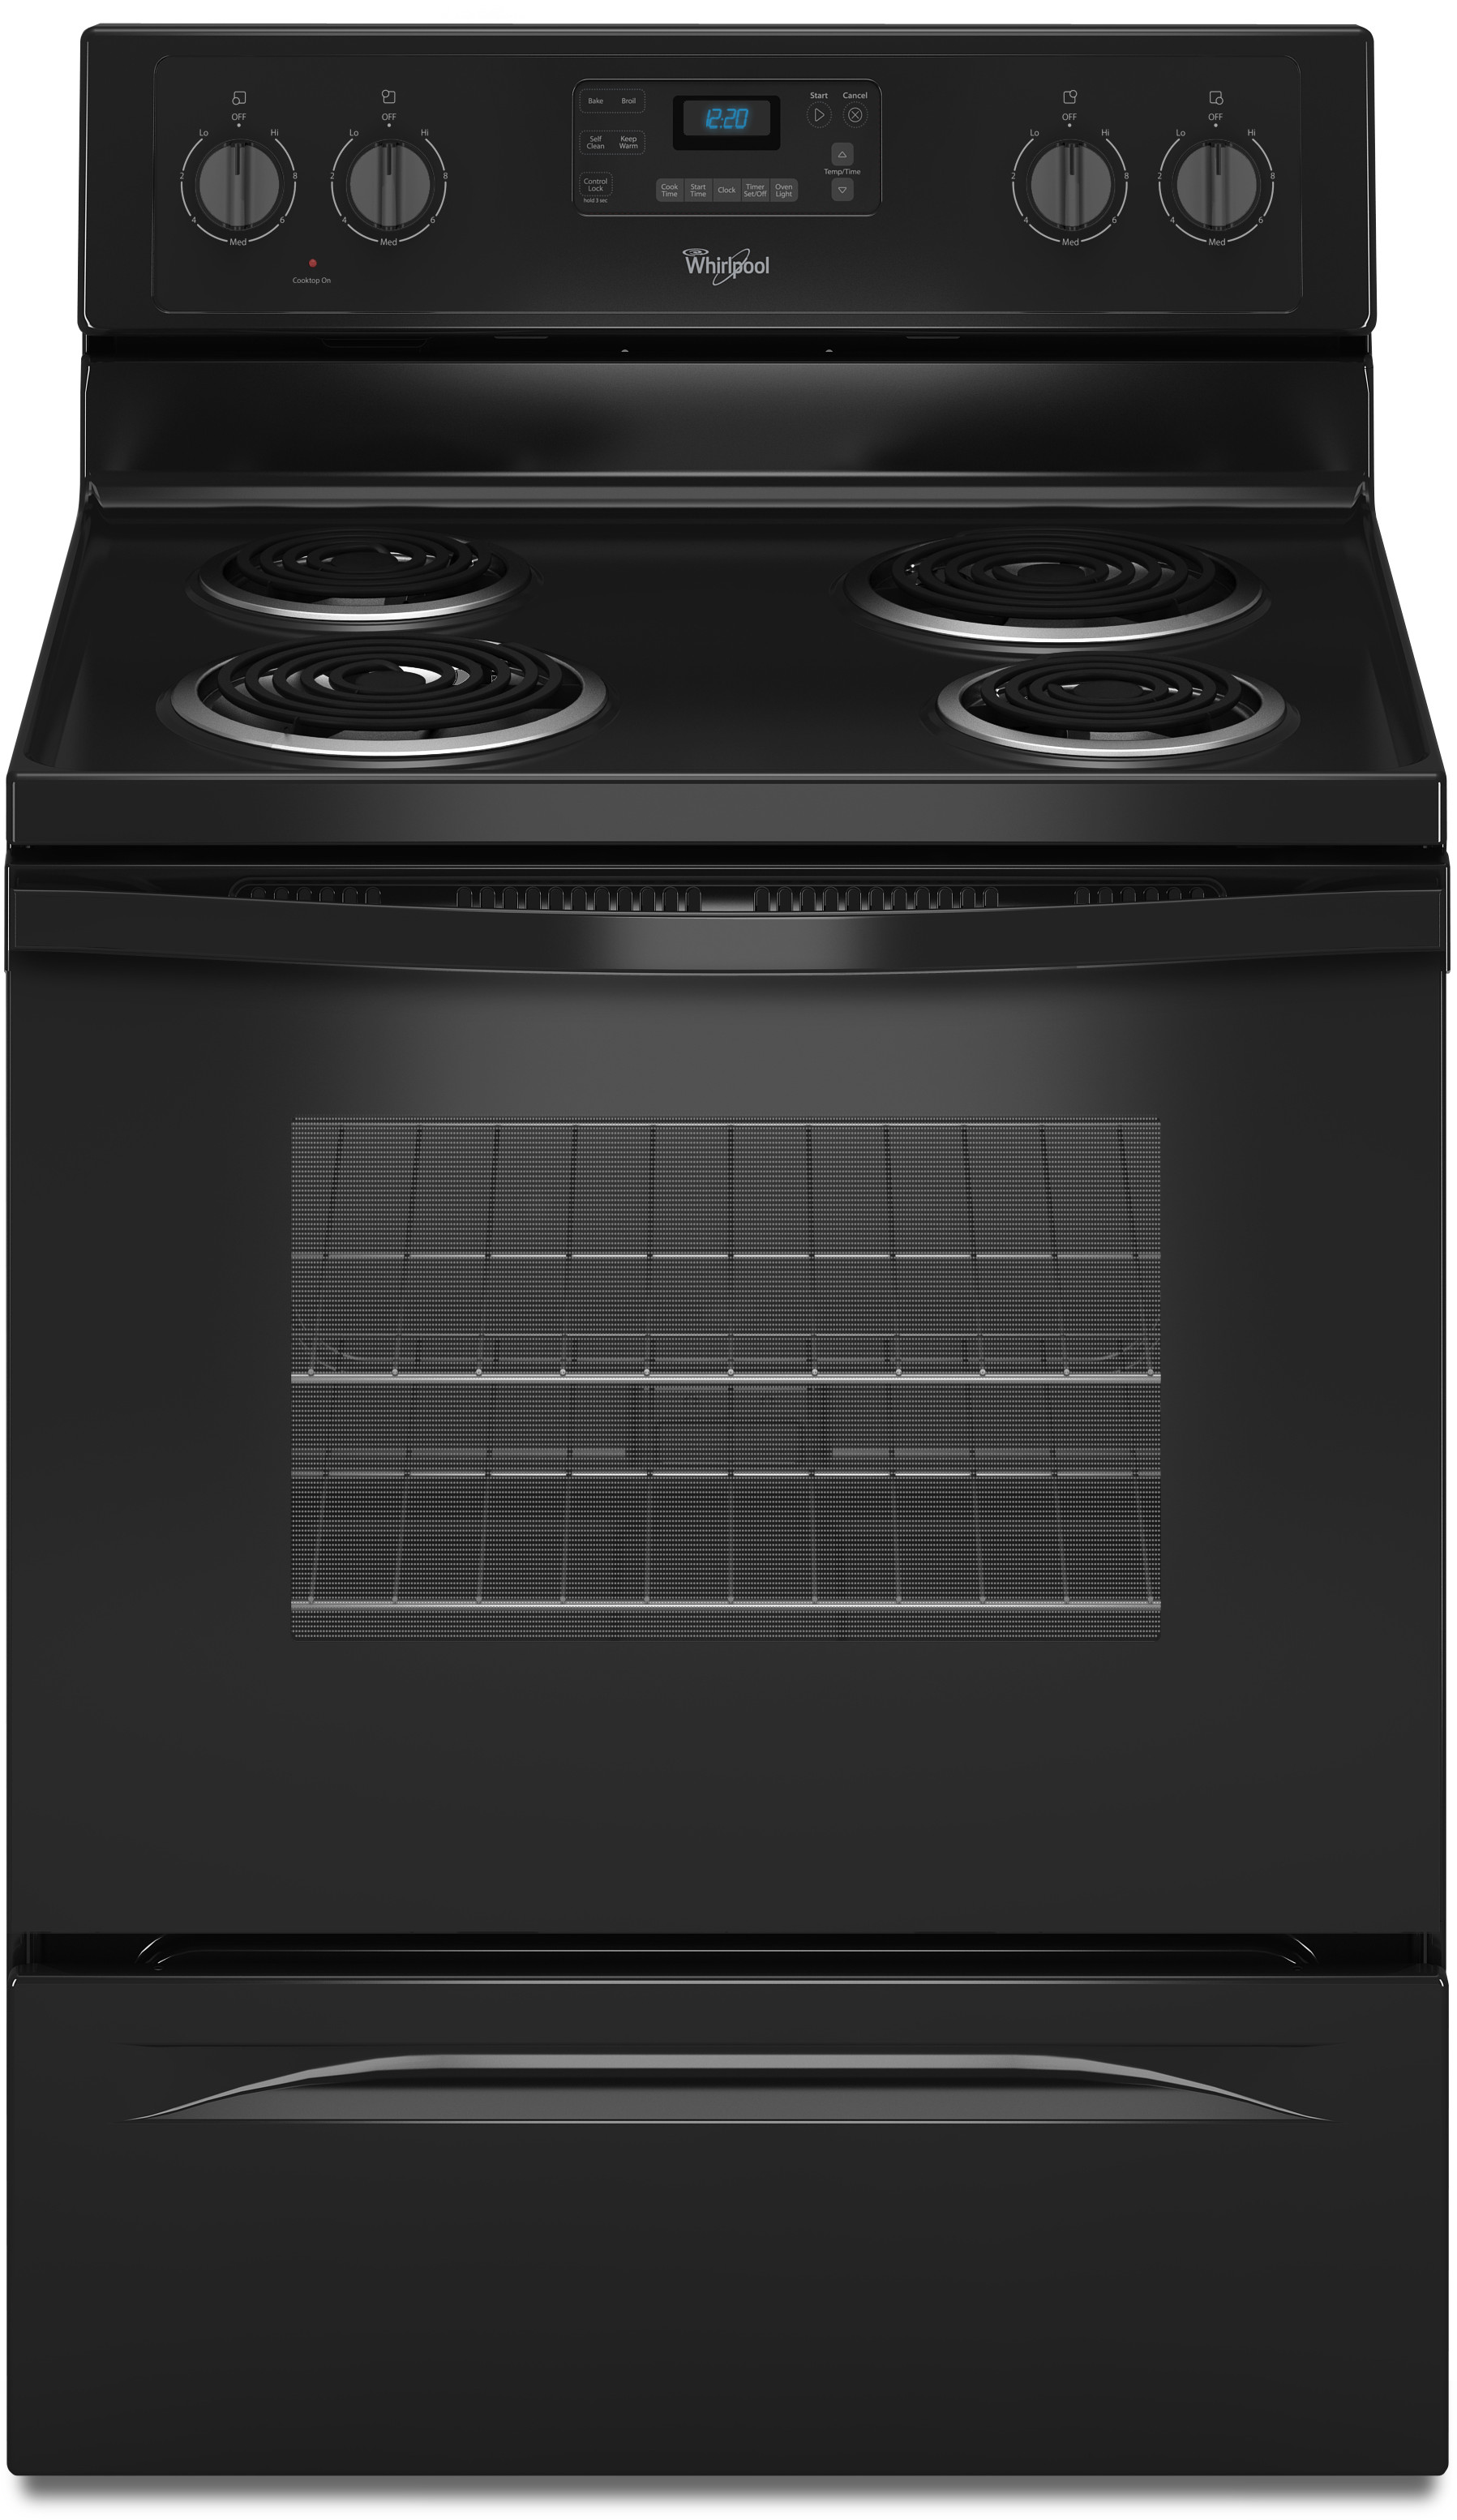 Whirlpool Wfc310s0eb 30 Inch Freestanding Electric Range With 4 Coil Elements  2 600 Watts  4 8